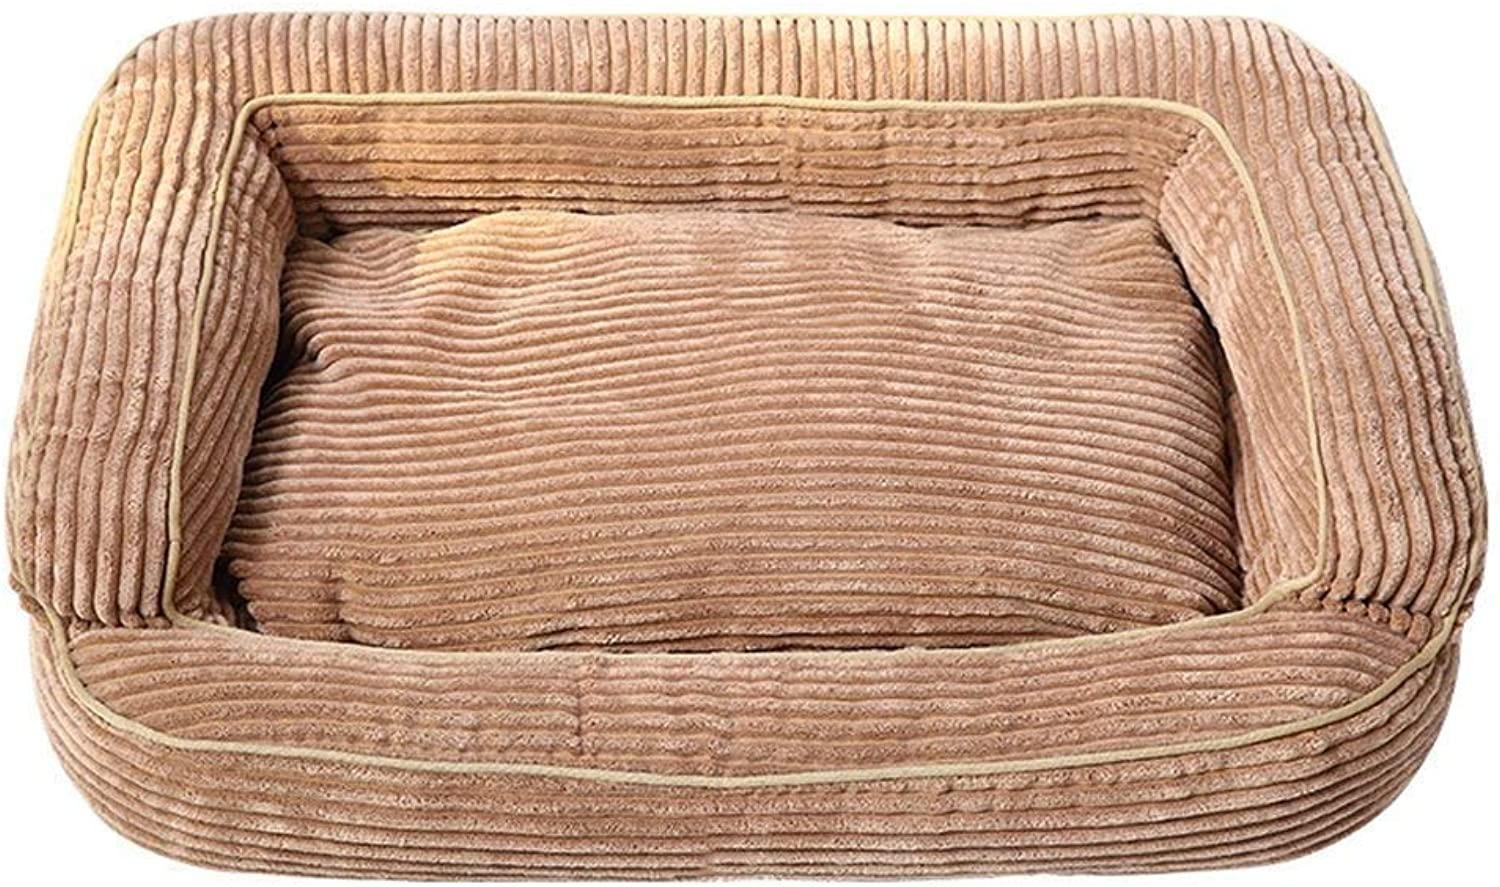 CHONGWFS Pet Dog Bed Warming Dog House Soft Material Pet Nest Dog Fall And Winter Warm Nest Kennel For Cat Puppy With (color   Khaki, Size   L)